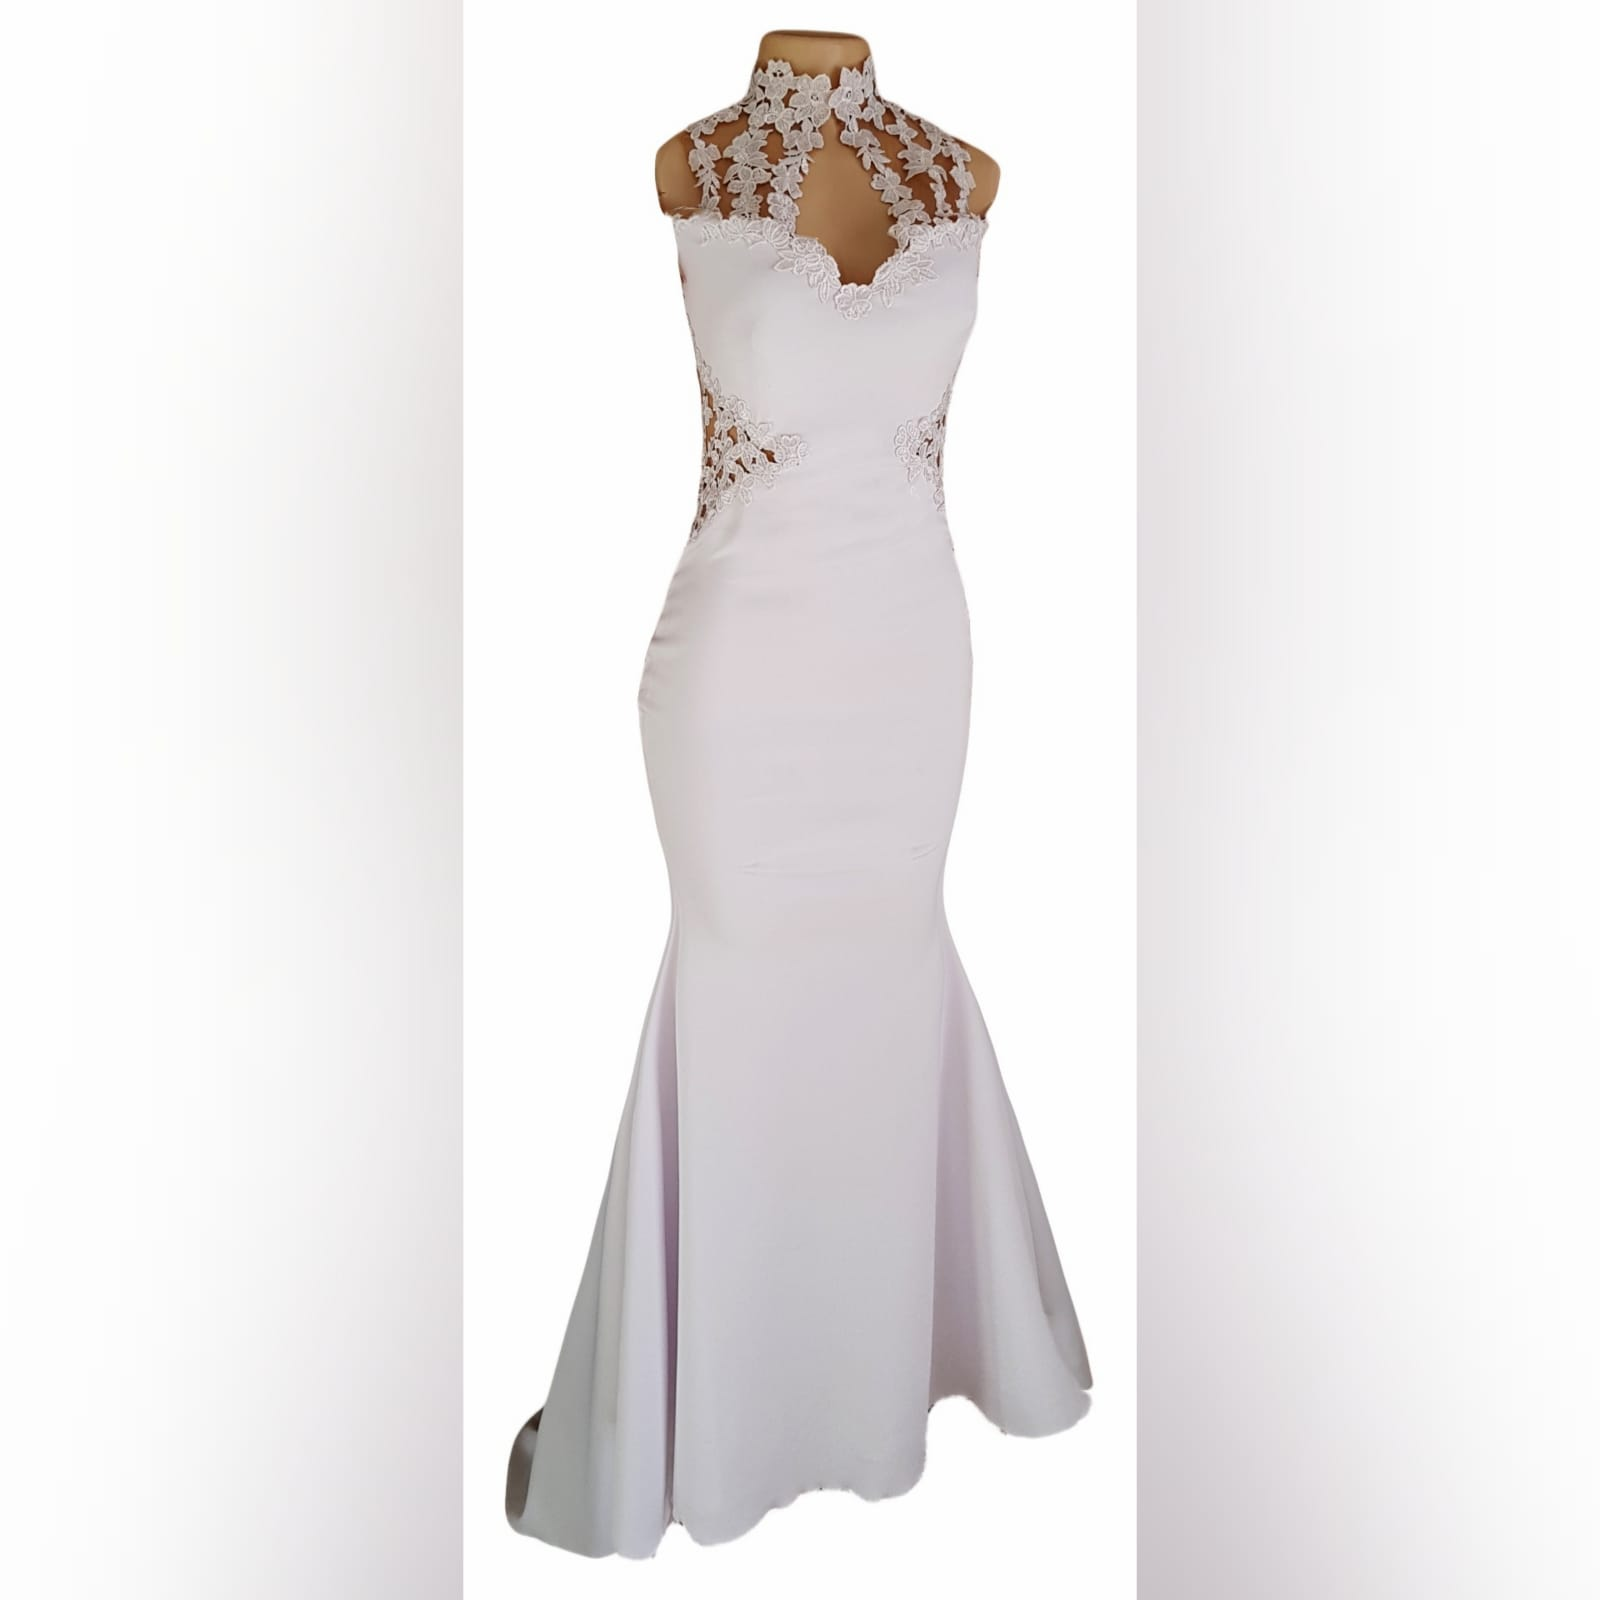 Choker white soft mermaid prom dress 8 white soft mermaid prom dress with a choker neckline and lace detail on the bodice, back & side tummy openings.